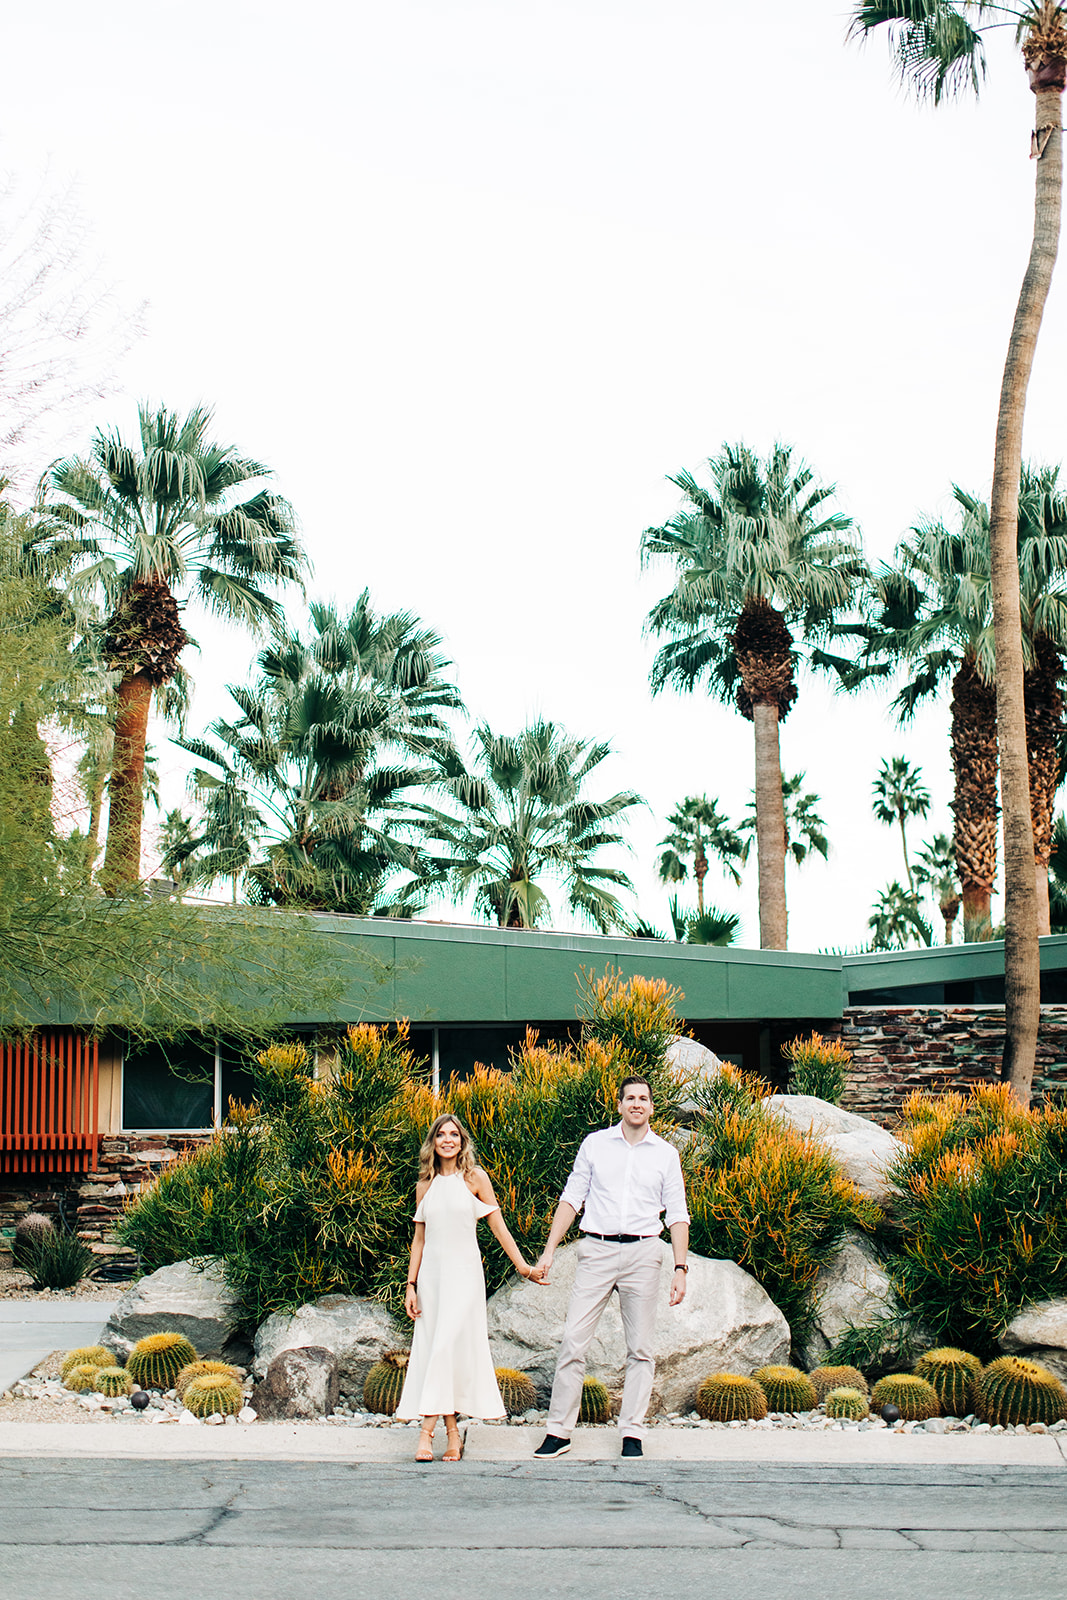 Paulina-Drew_Palm-Springs-Engagement-Photos_Clarisse-Rae_Southern-California-Wedding-Photographer-43